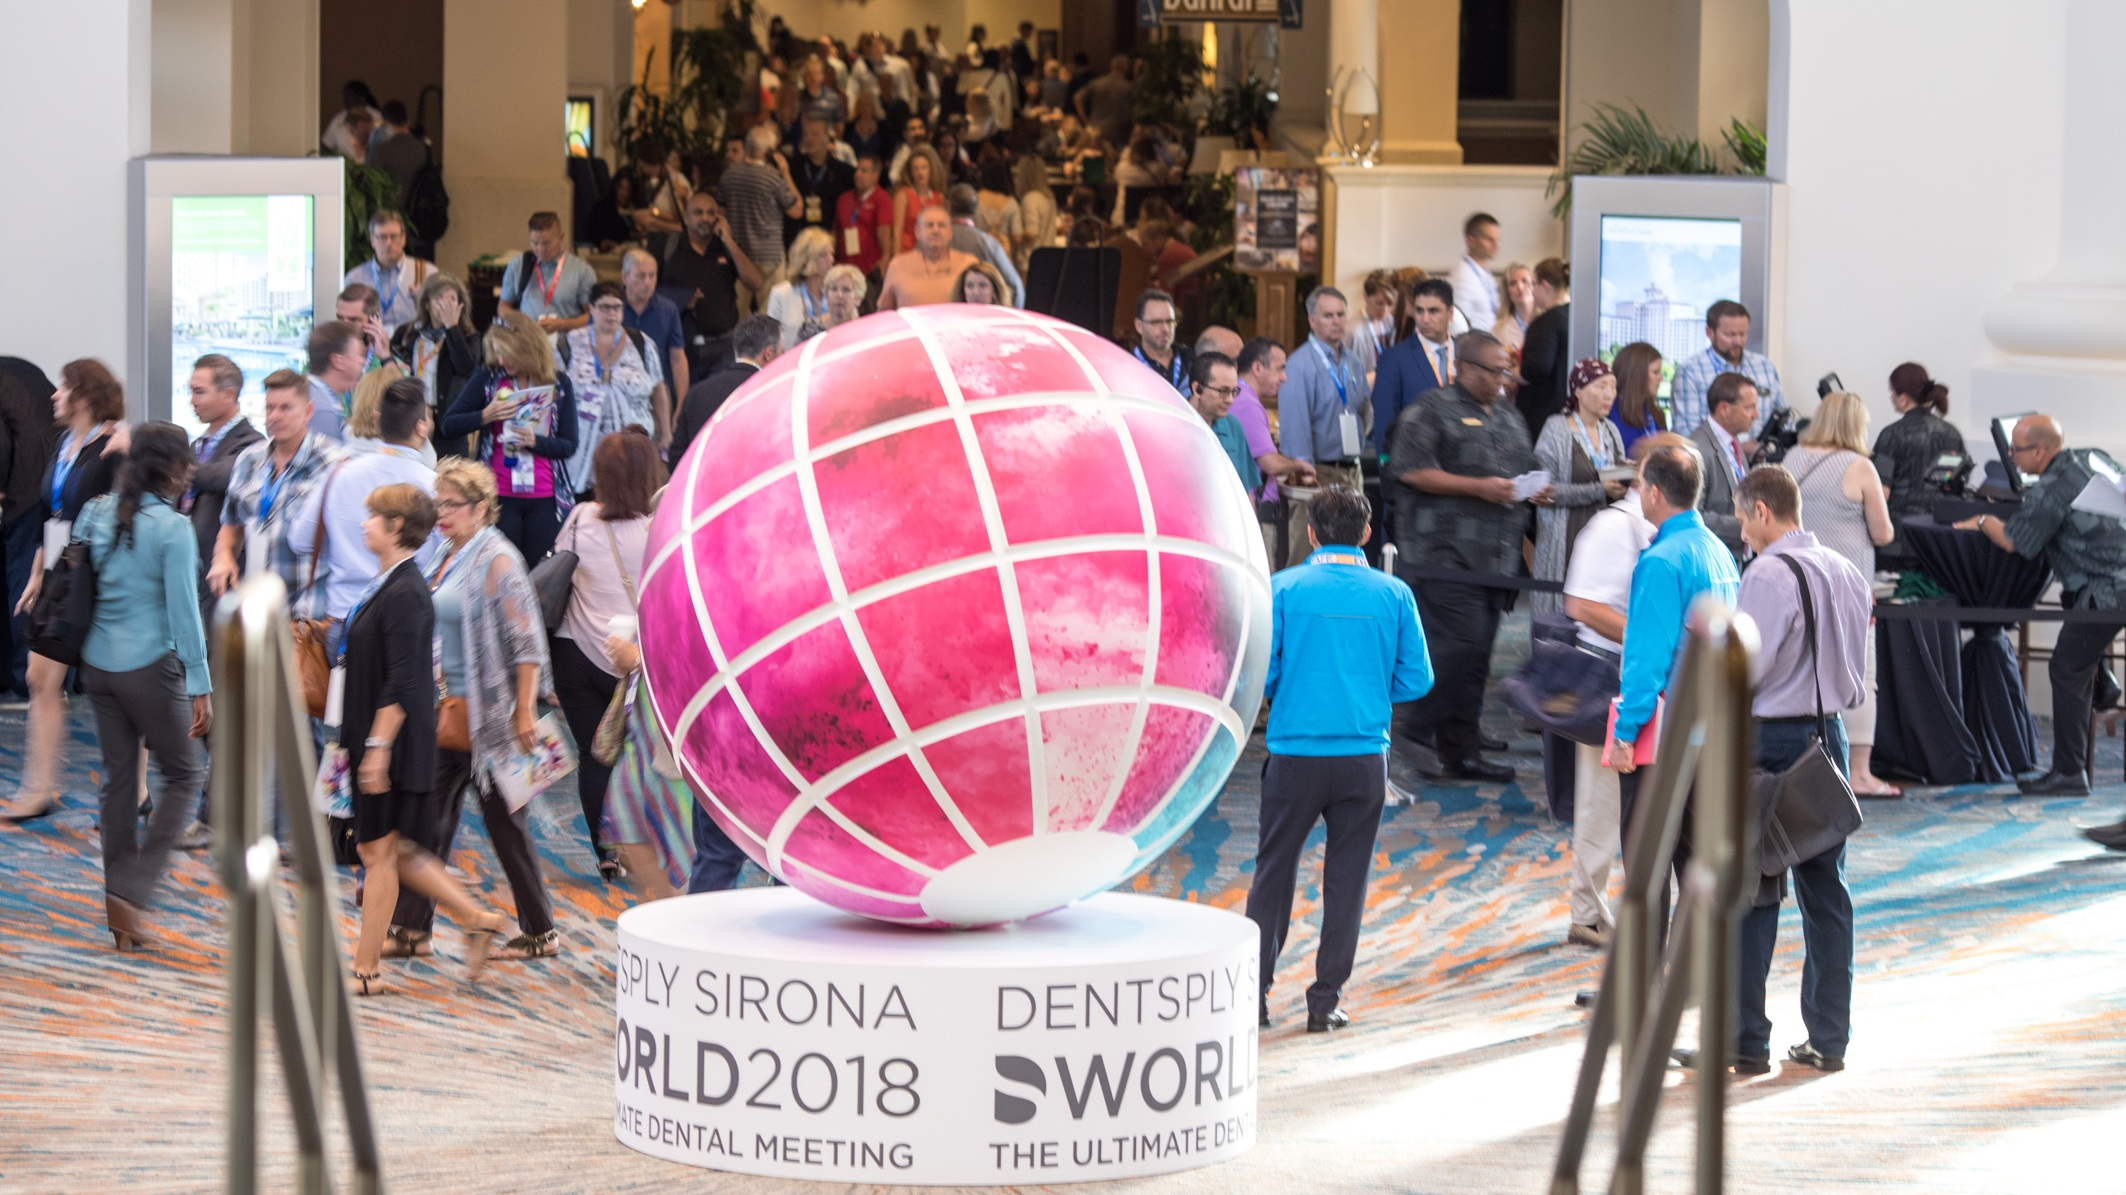 Live, love, laugh, learn at Dentsply Sirona World. This motto is what Dentsply Sirona strives to accomplish each and every year with the execution of the Ultimate Dental Meeting .  READ MORE